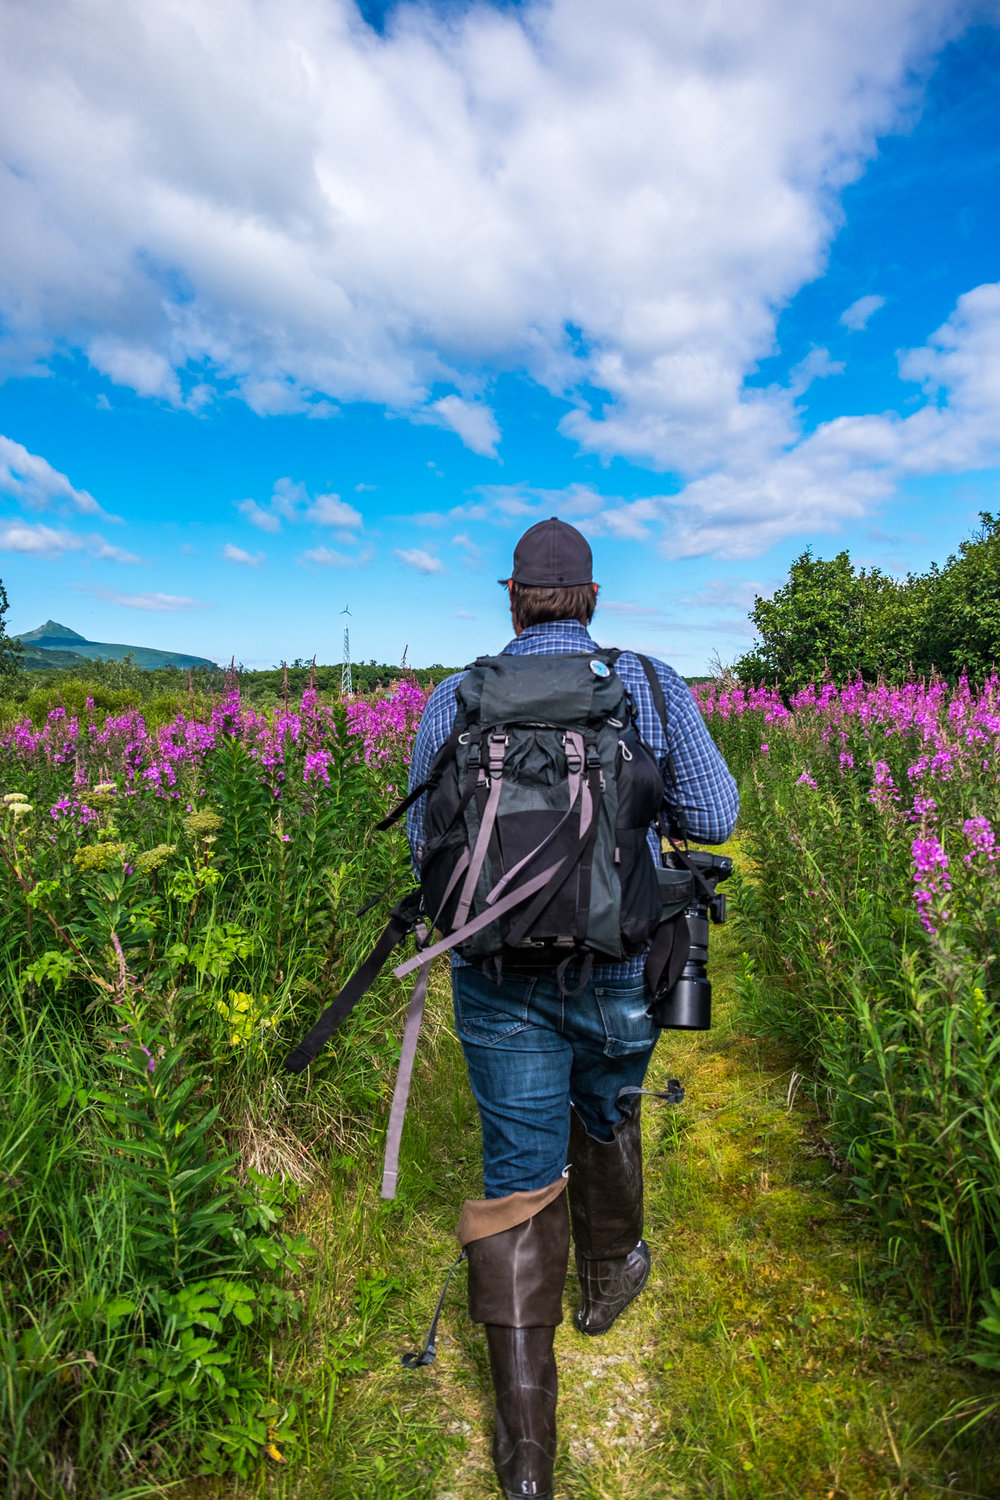 Jonathan trekking into the fireweed in search of coastal brown bears in Katmai National Park in Alaska.